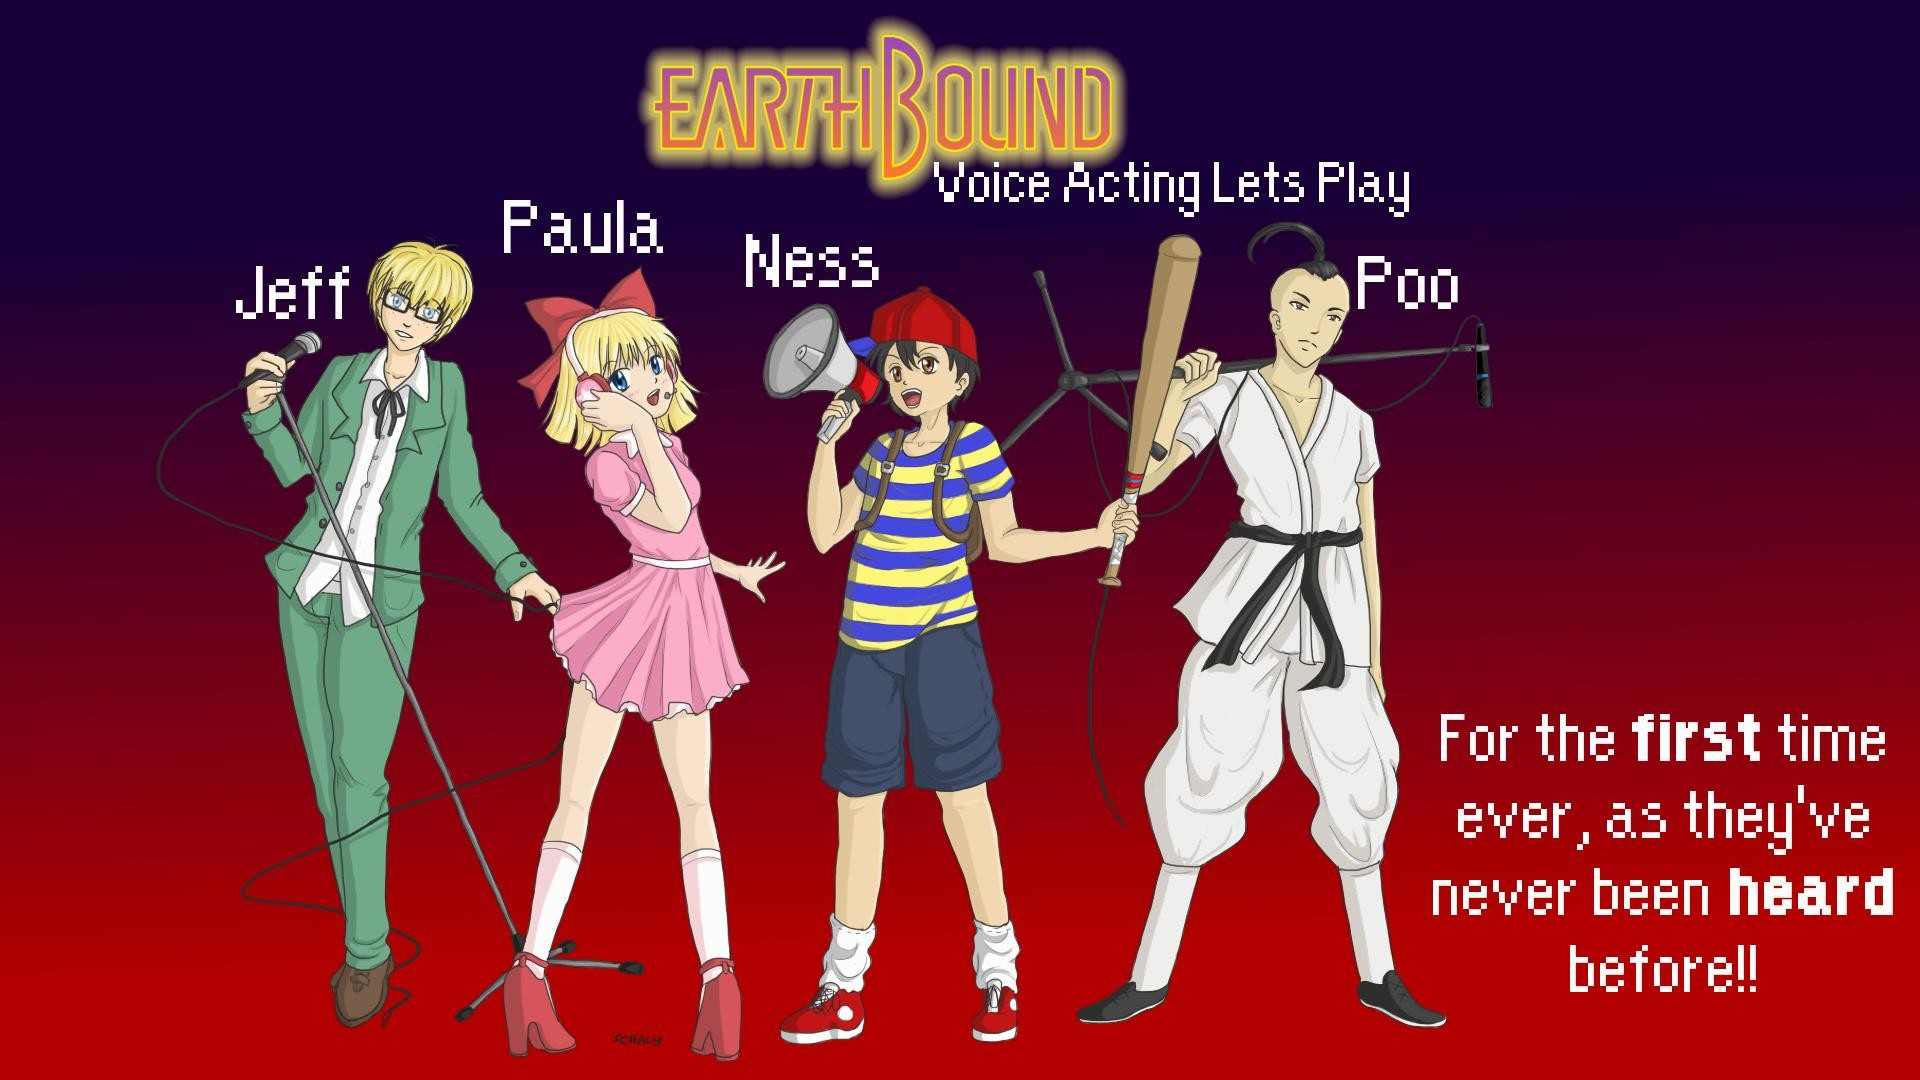 Earth-Bound-Images-Photos · Earthbound-Wallpapers